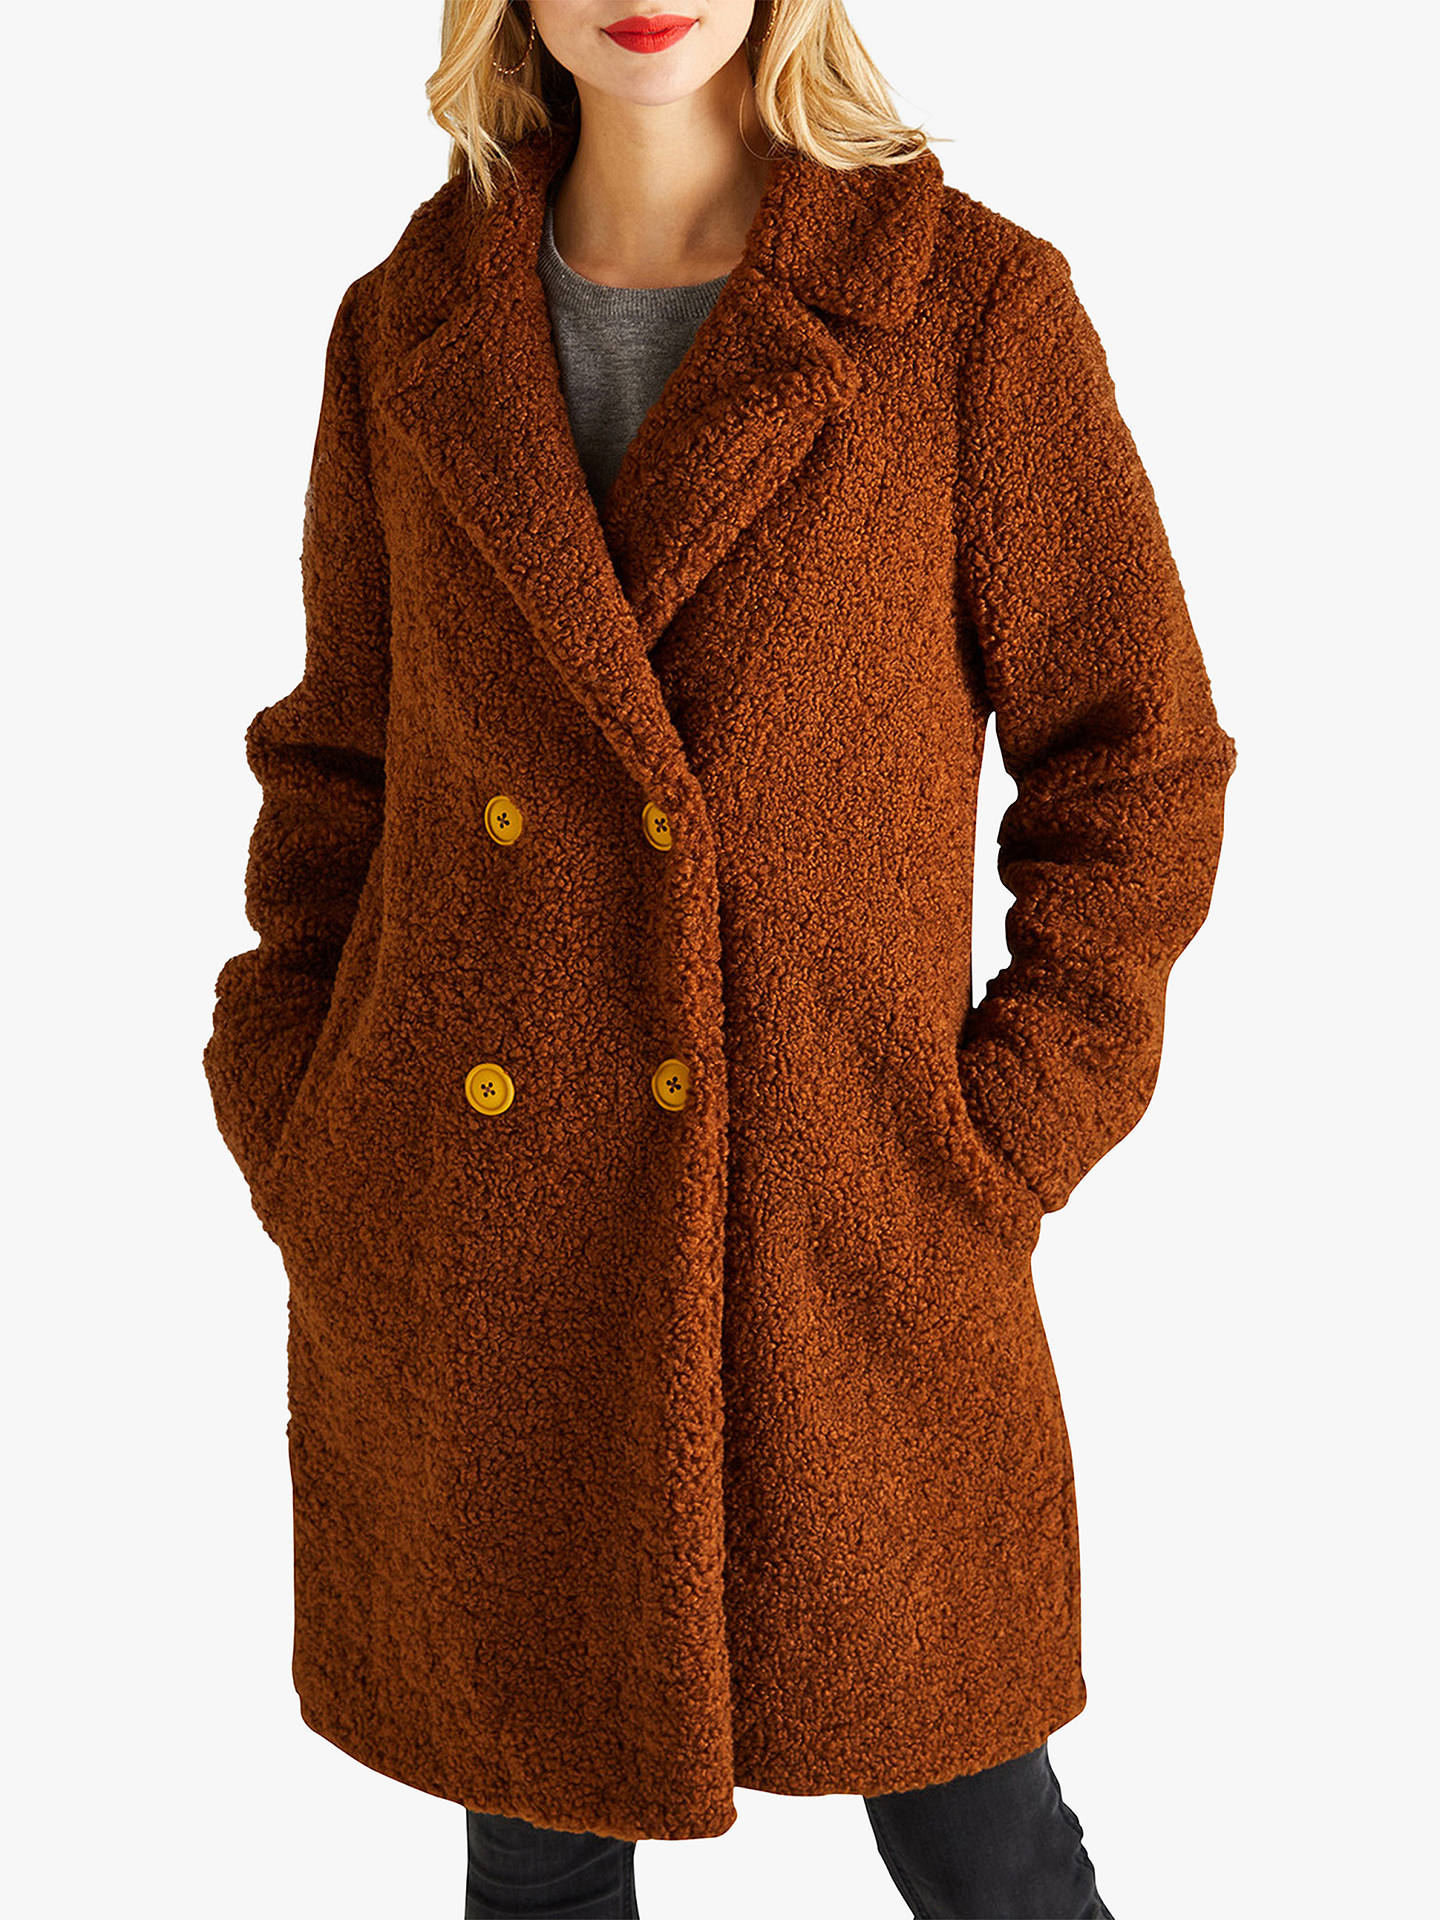 6fad0d8061 Buy Yumi Double Breasted Teddy Coat, Brown, 10 Online at johnlewis.com ...